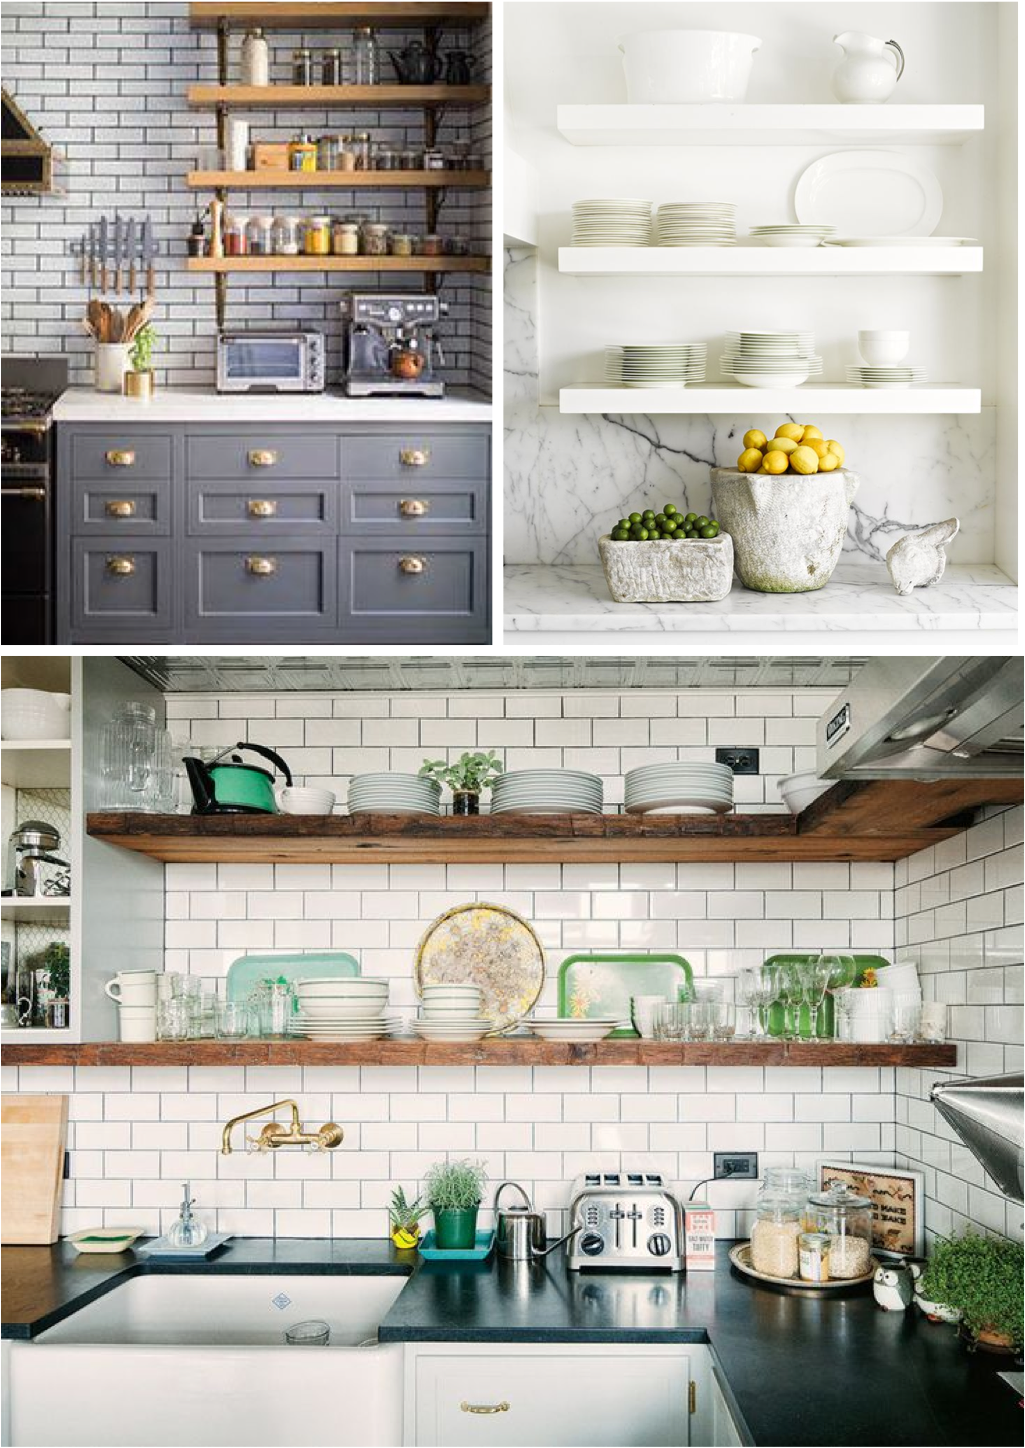 Open shelves in kitchen ideas open shelves yay or nay for the